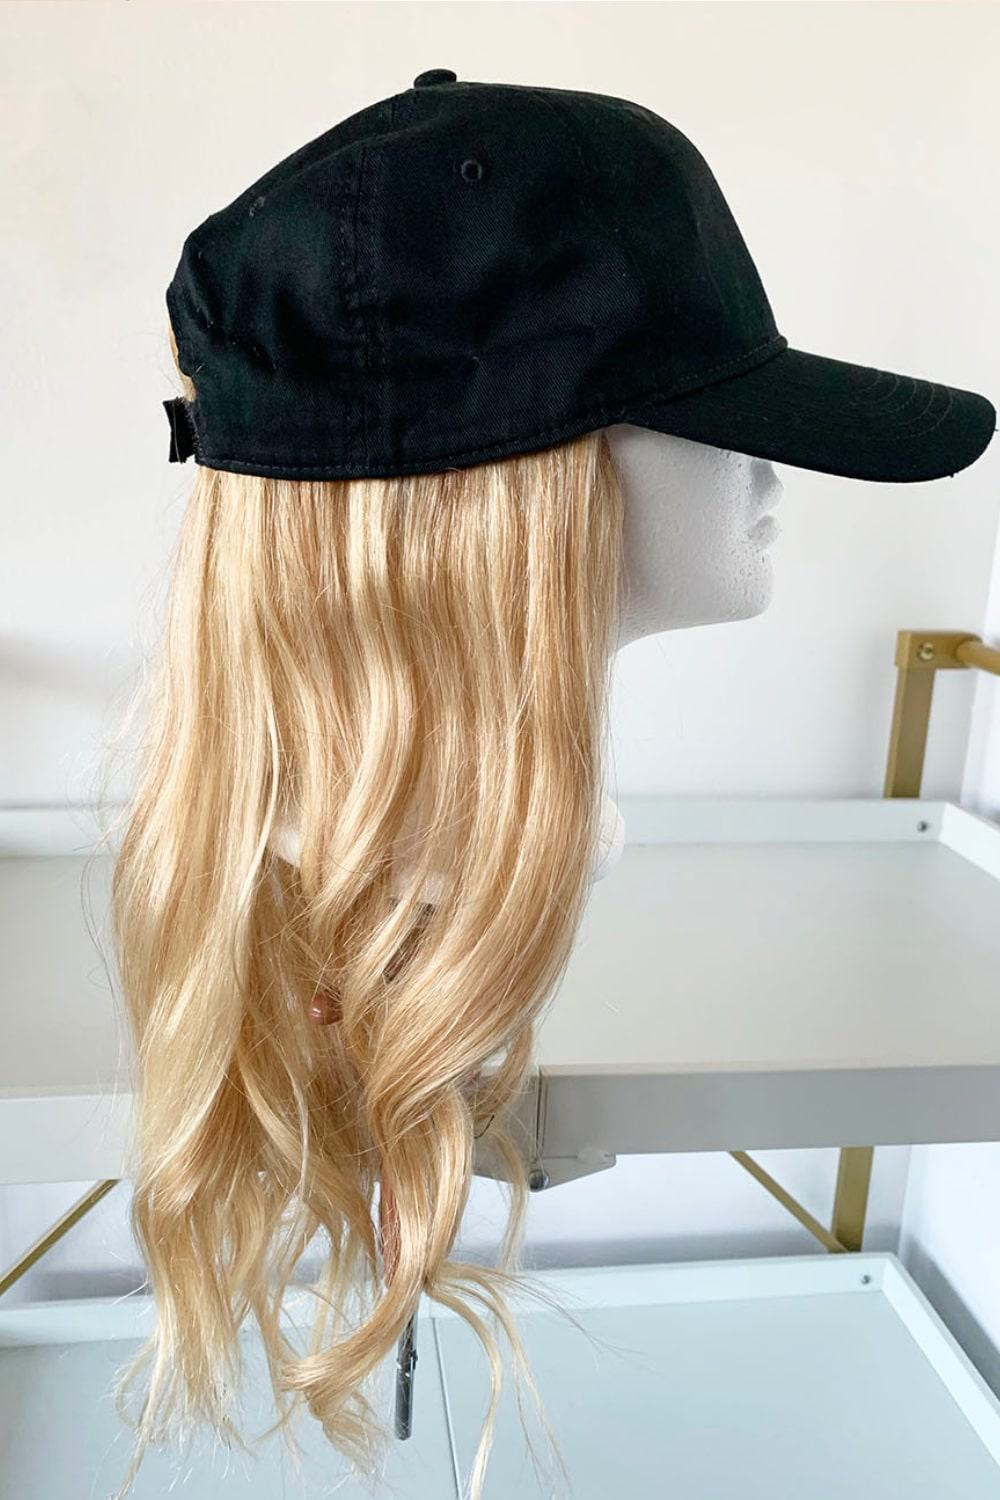 How to Make a DIY Wig Hat